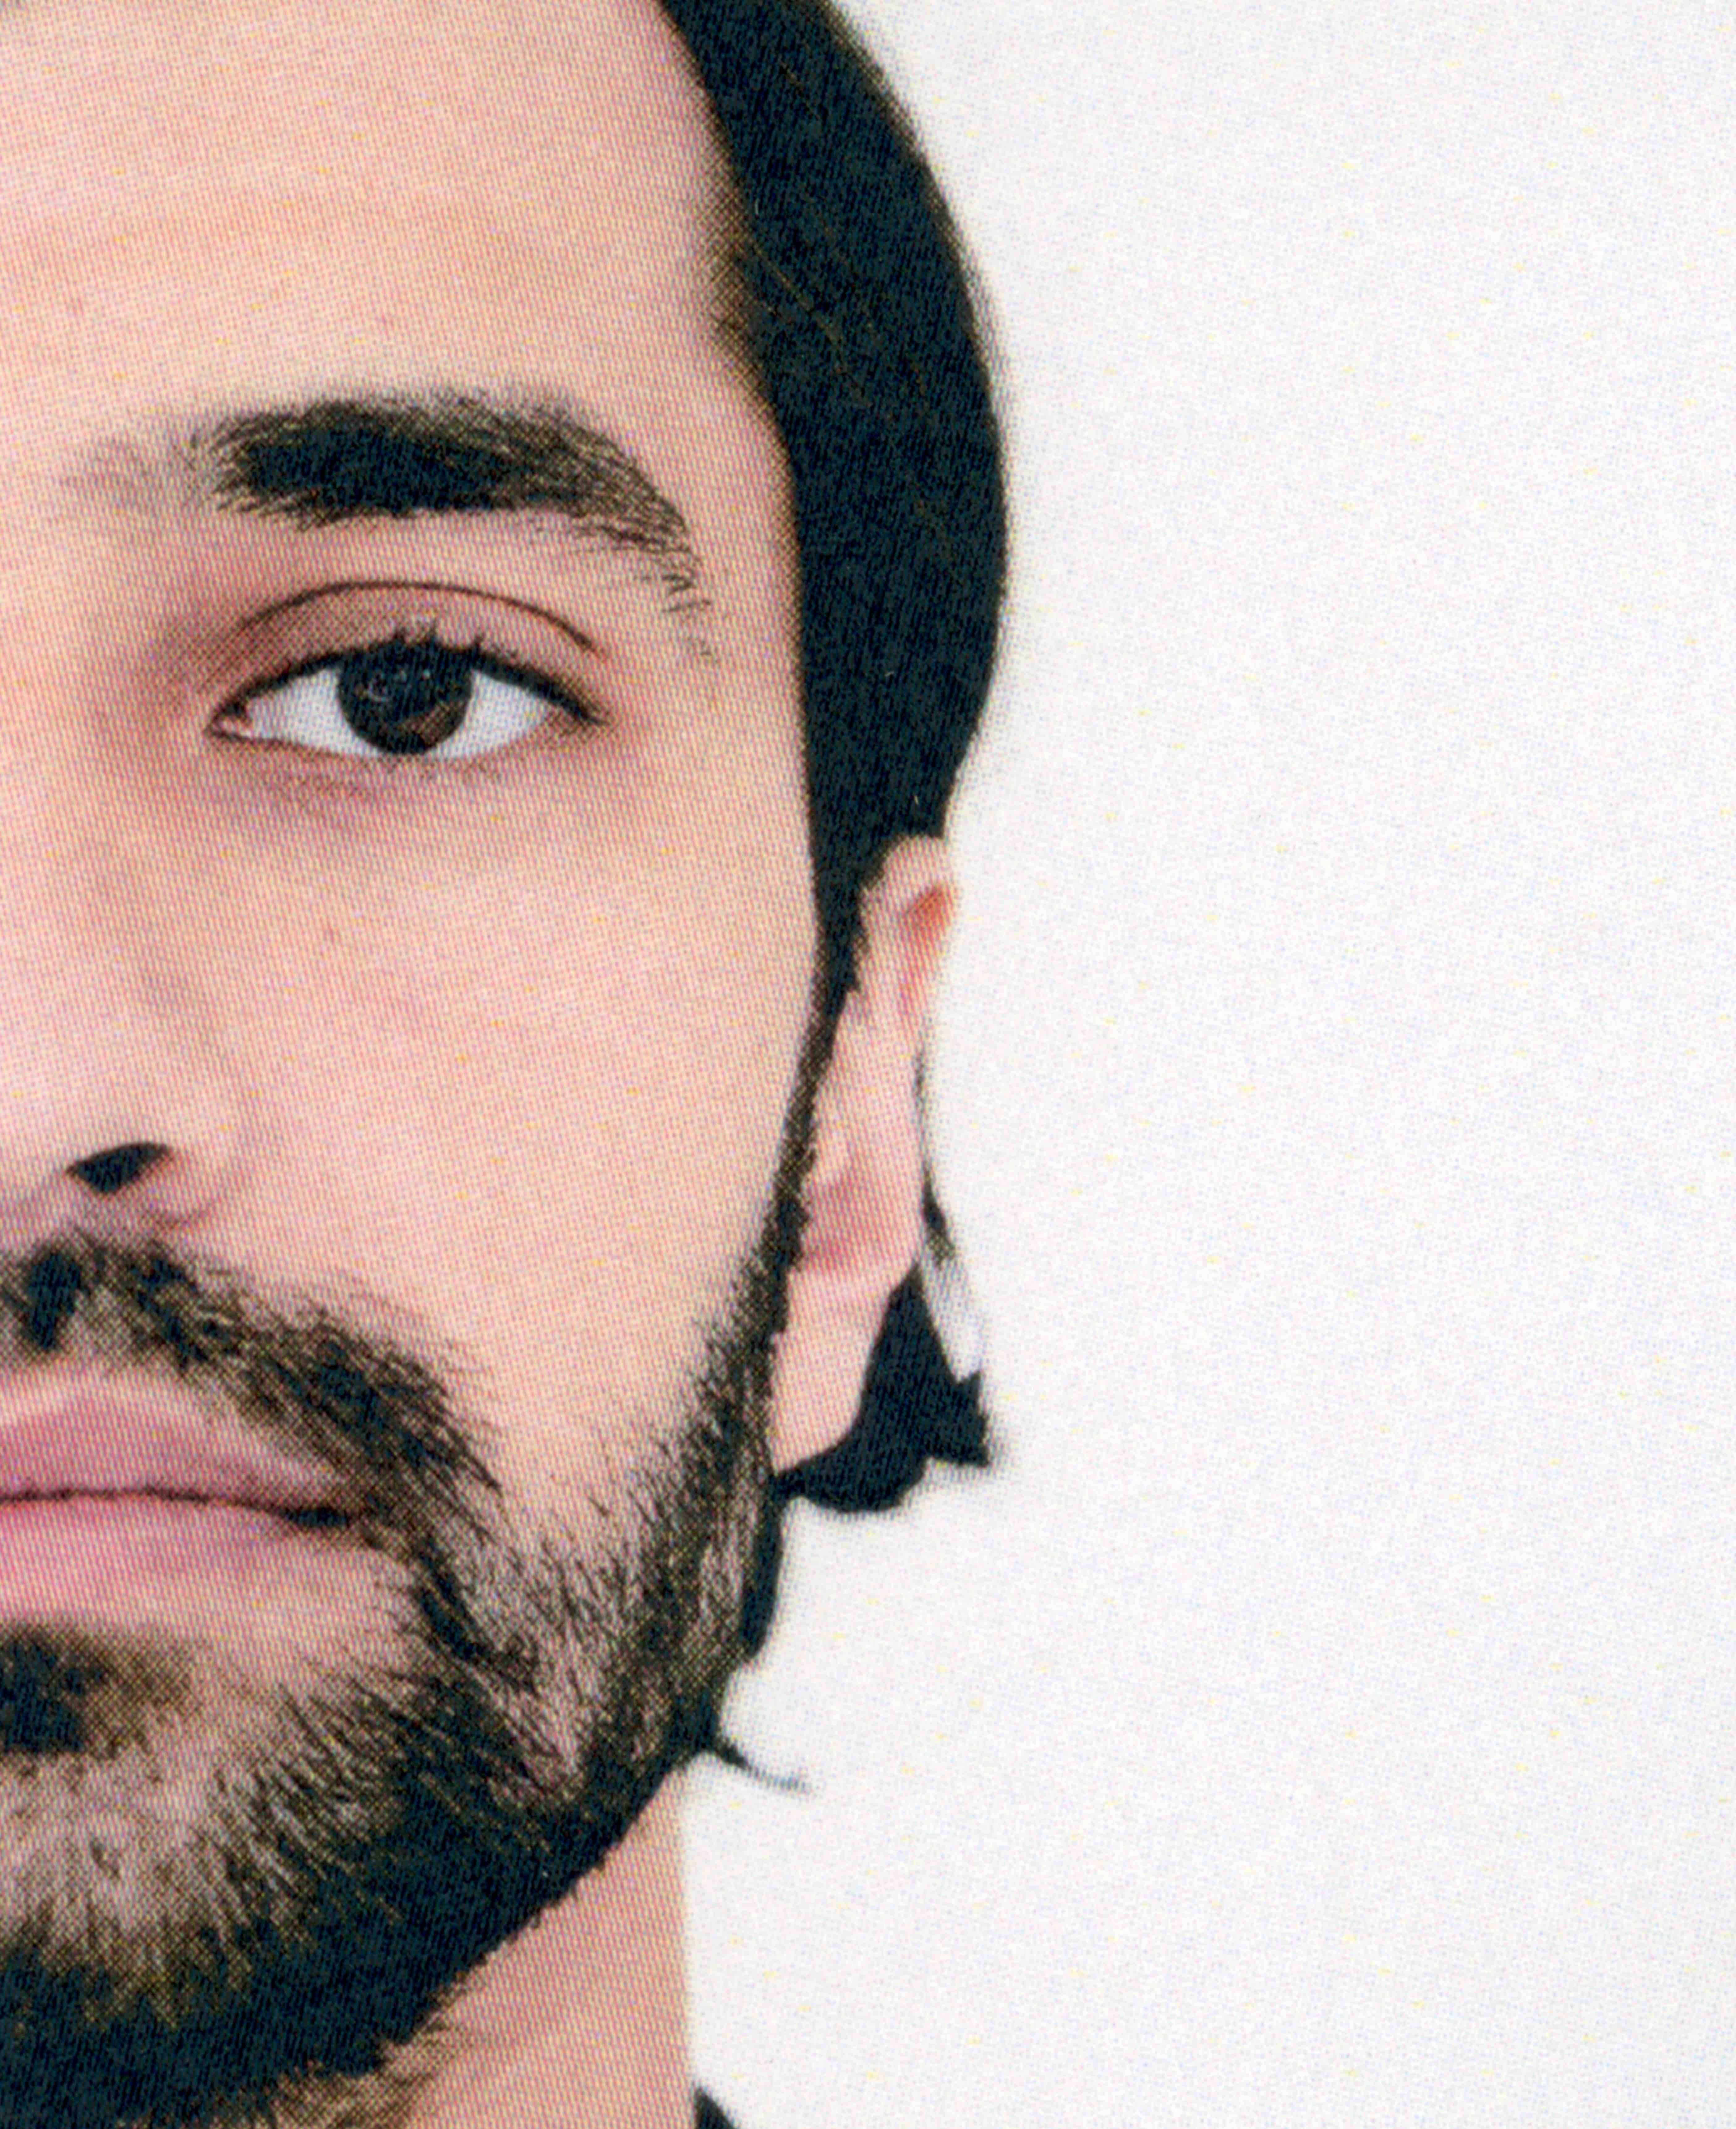 Jeremy Olander's cinematic selections